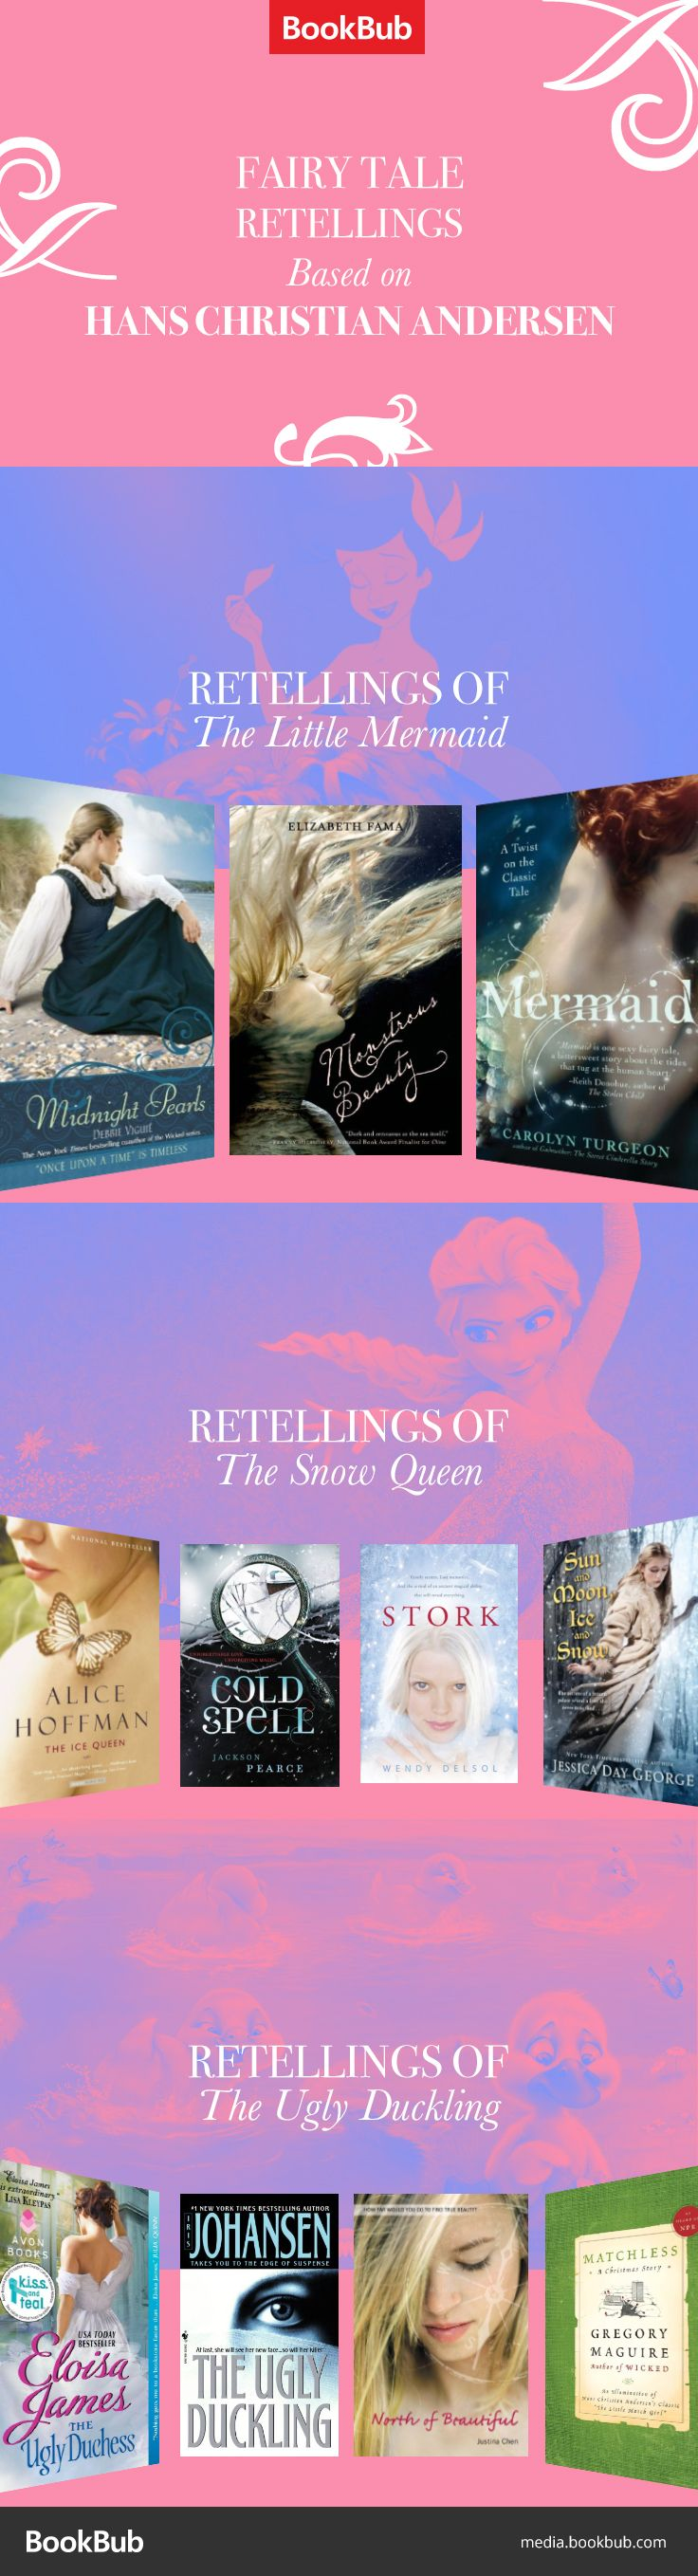 Books worth reading: Channel your inner kid with these YA books based on Hans Christian Andersen fairy tales